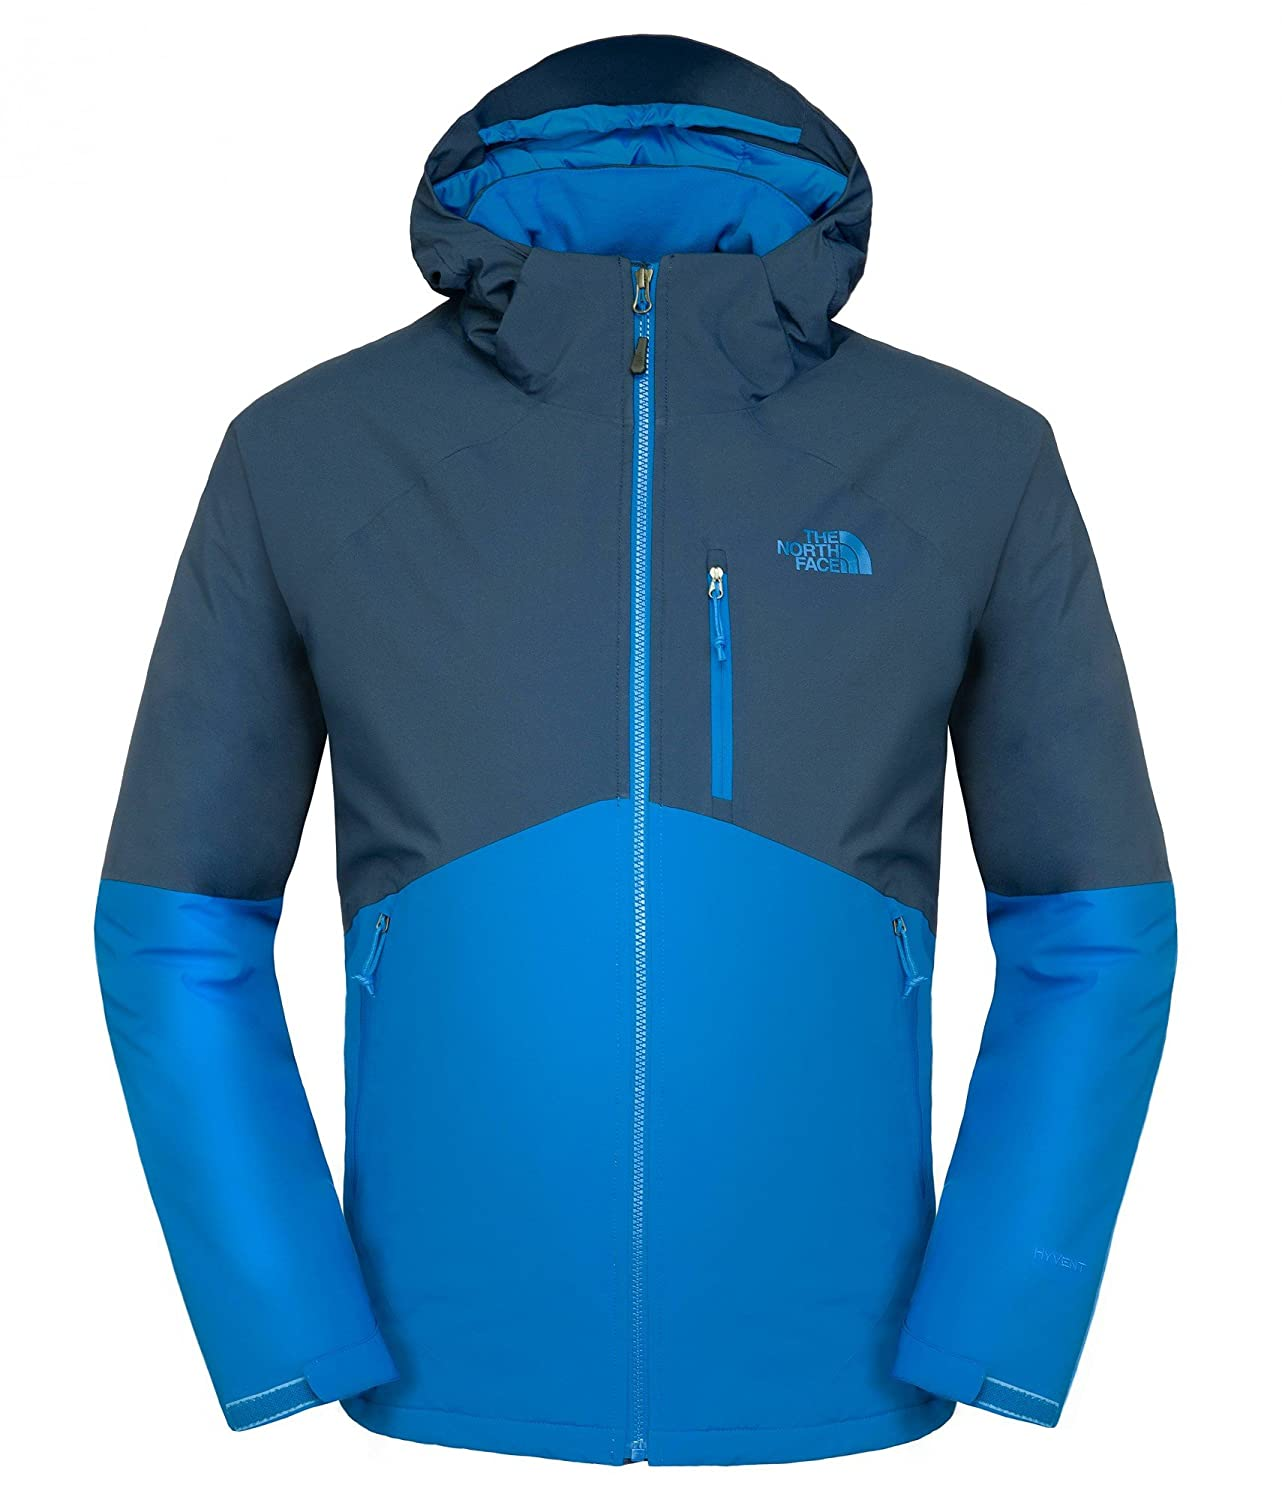 THE NORTH FACE Herren Jacke Salire Insulated günstig bestellen